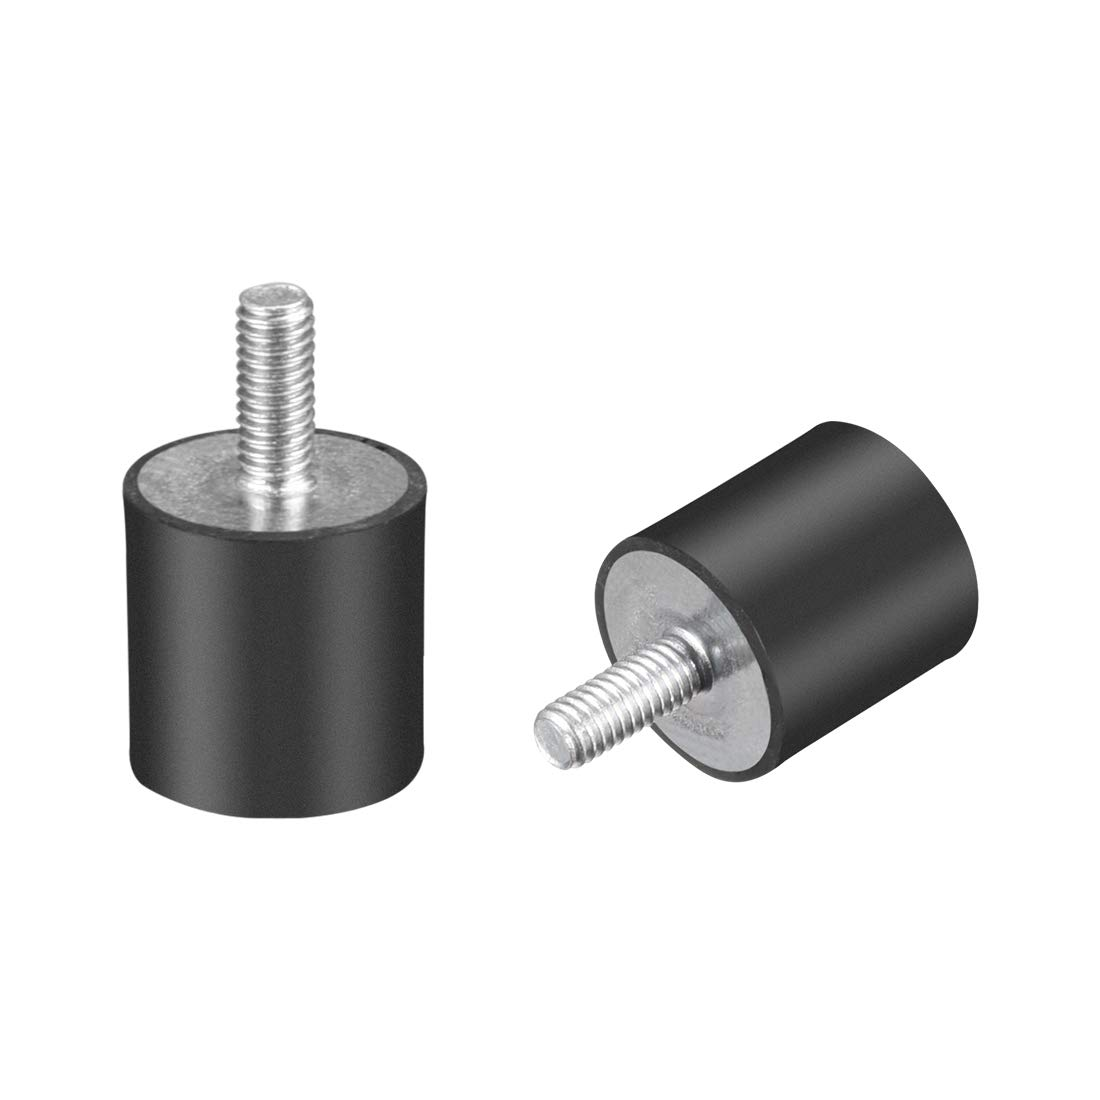 uxcell M4 Thread Rubber Mounts,Vibration Isolators,Cylindrical Shock Absorber with Studs 10 x 10mm